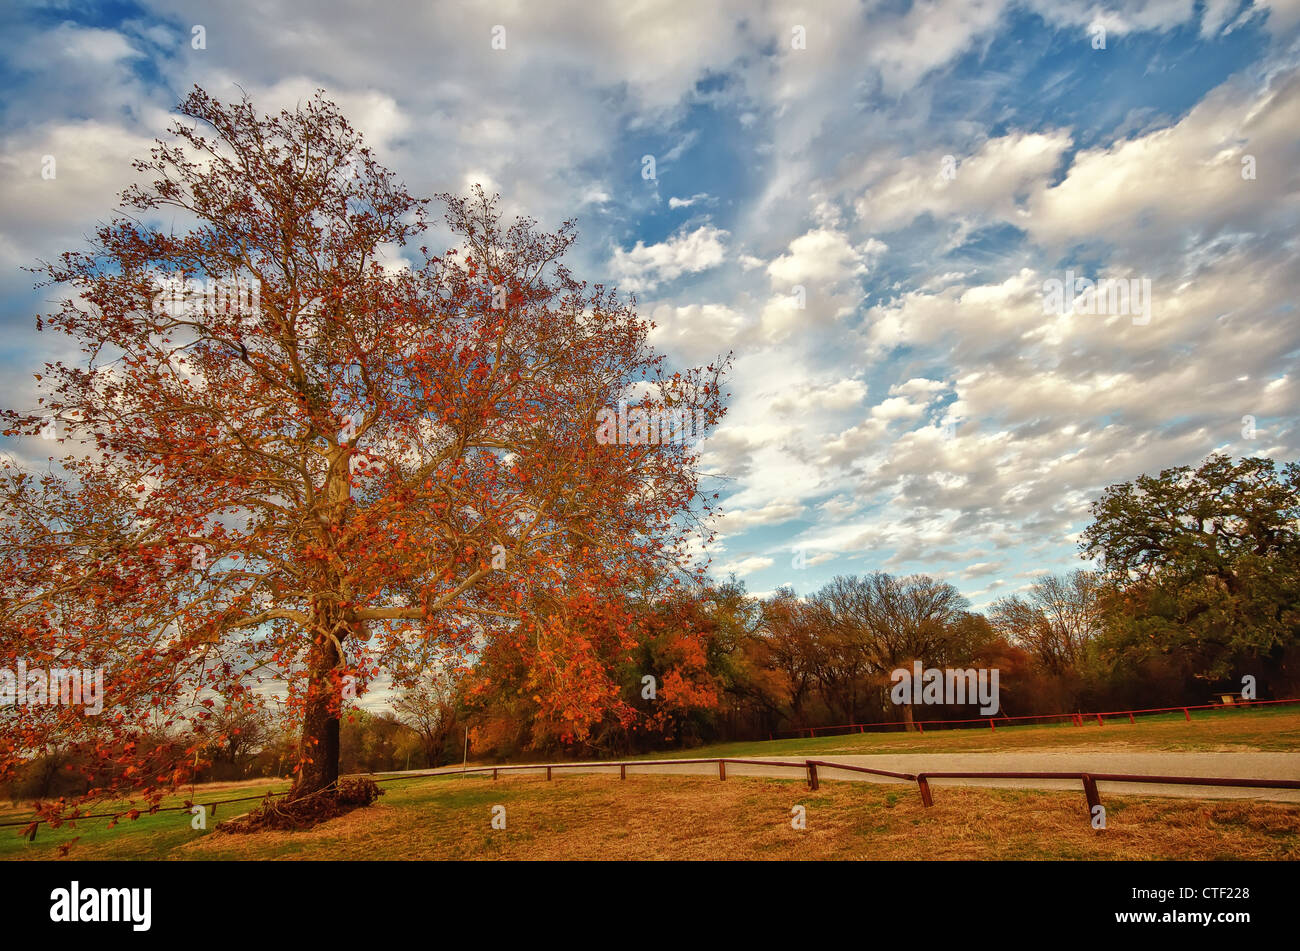 Autumn tree against beautiful cloudy sky in a park - Stock Image